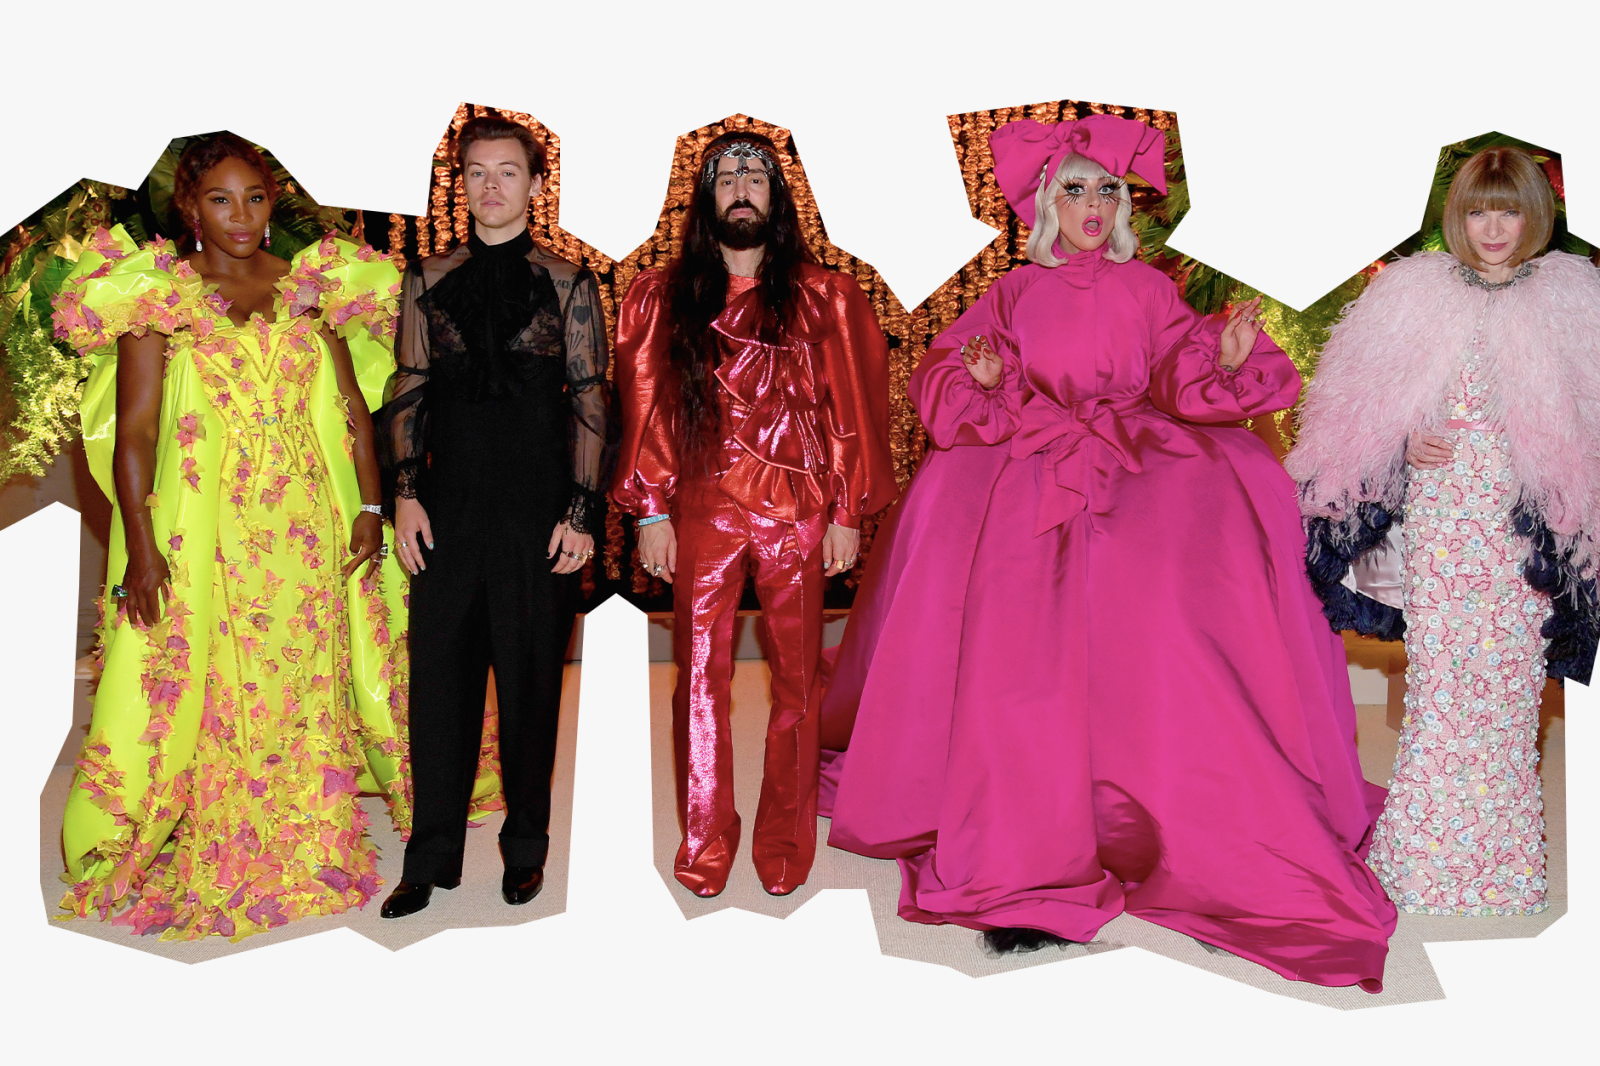 Harry Styles Fashion Evolution Career Gucci Met Gala Co-Chair Suit Album Release